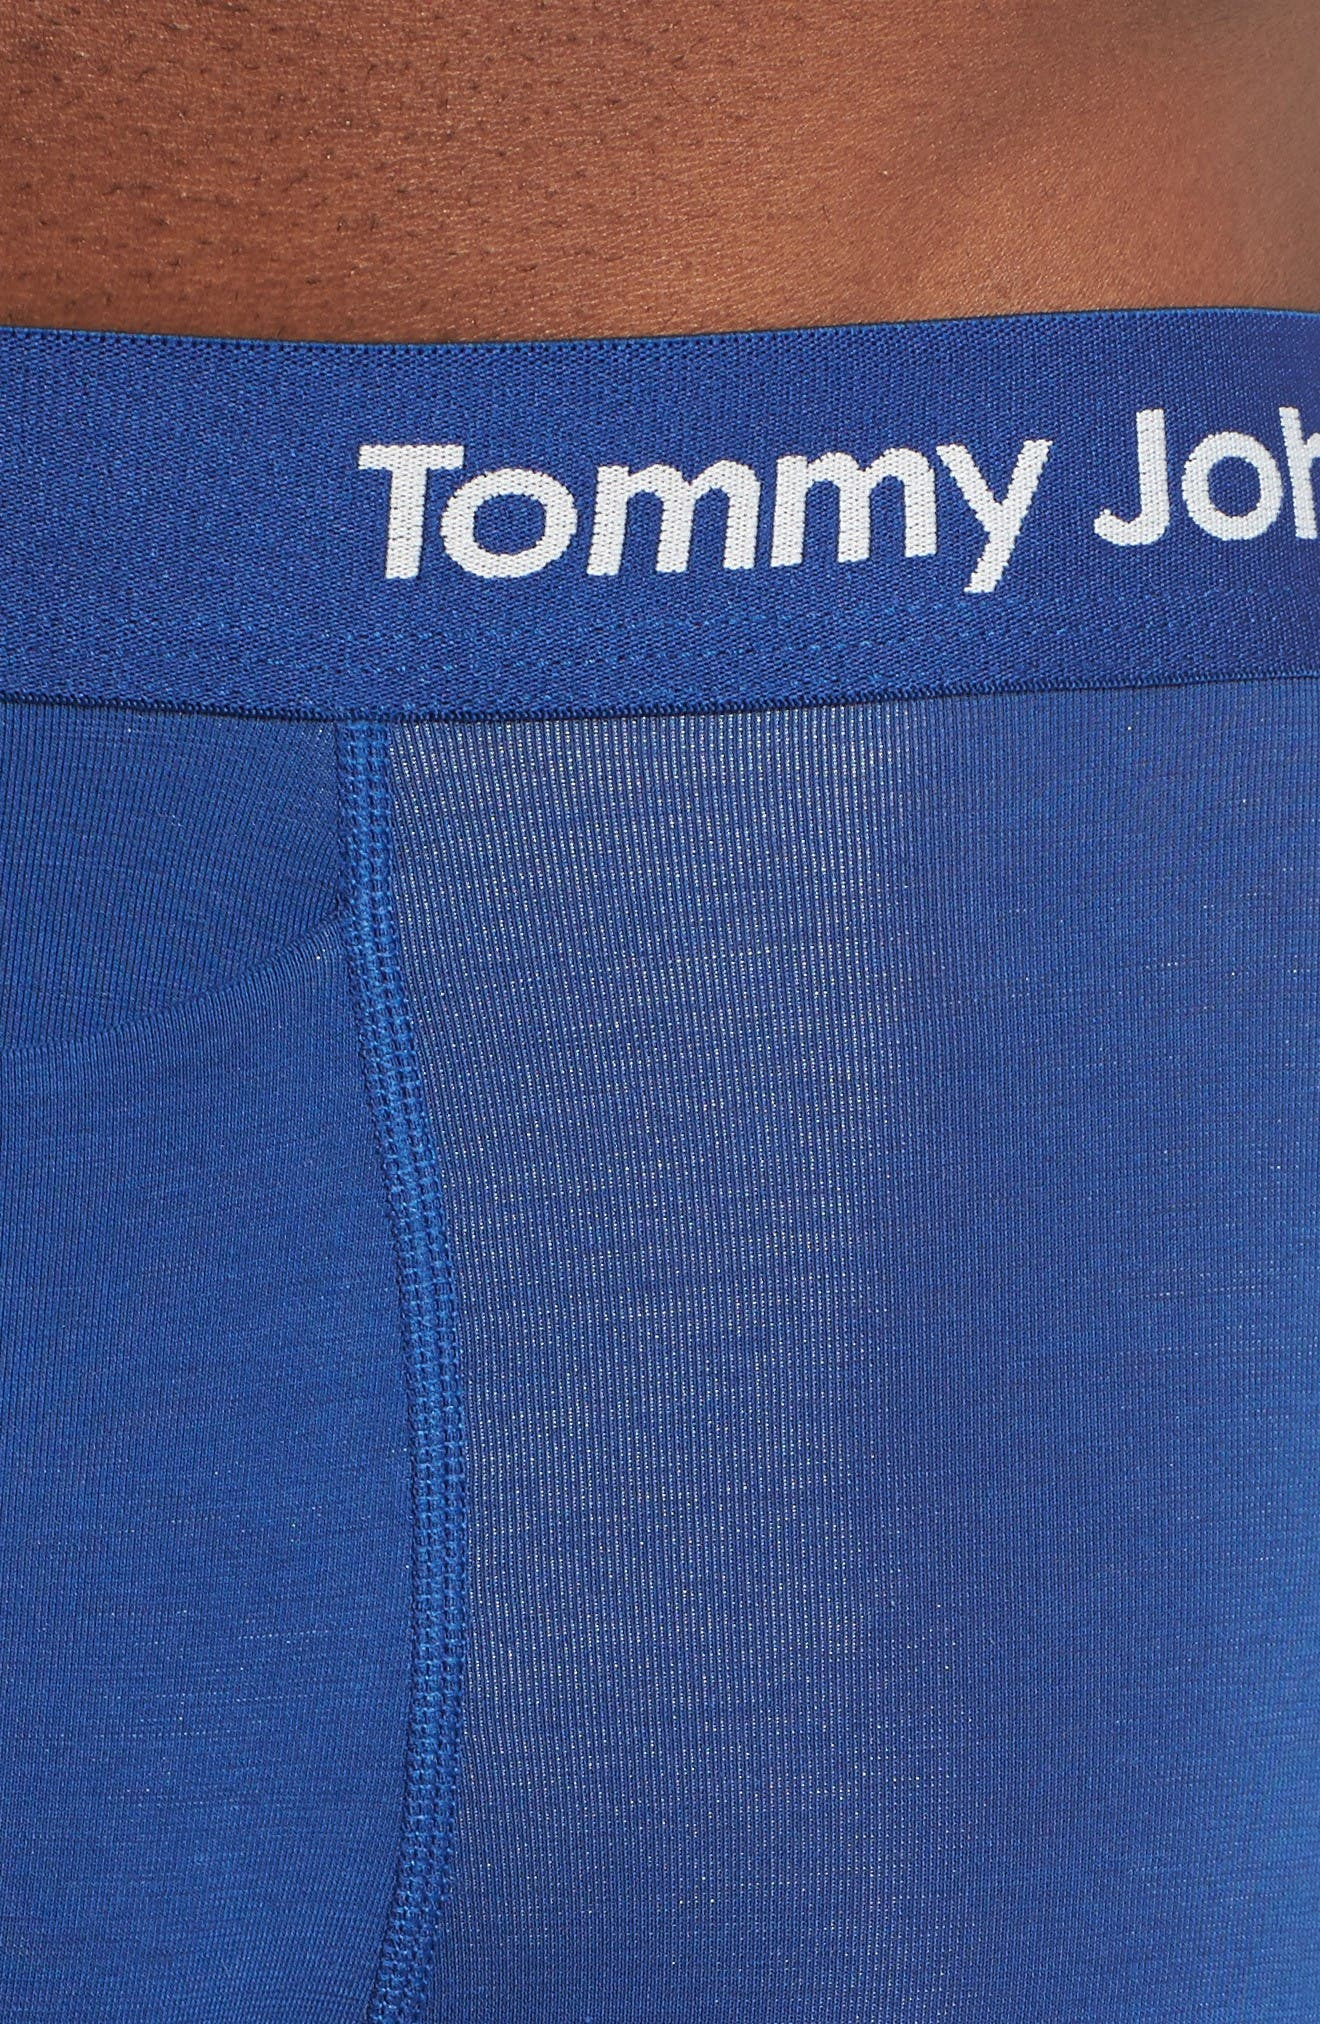 Alternate Image 4  - Tommy John Cool Cotton Boxer Briefs